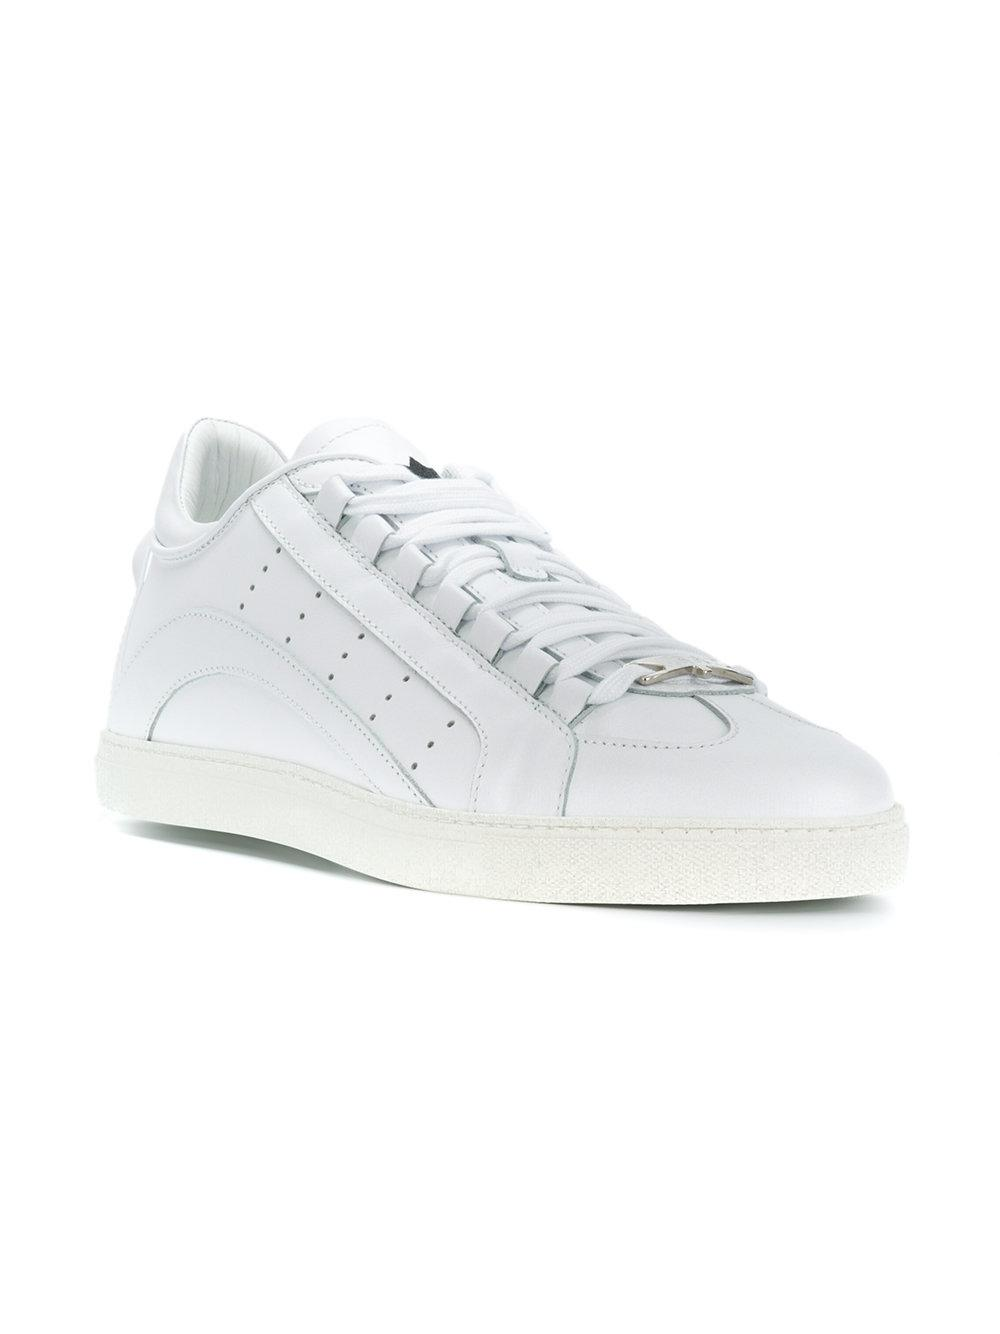 6cade9e2077 DSquared² Low-top Sneakers in White for Men - Lyst